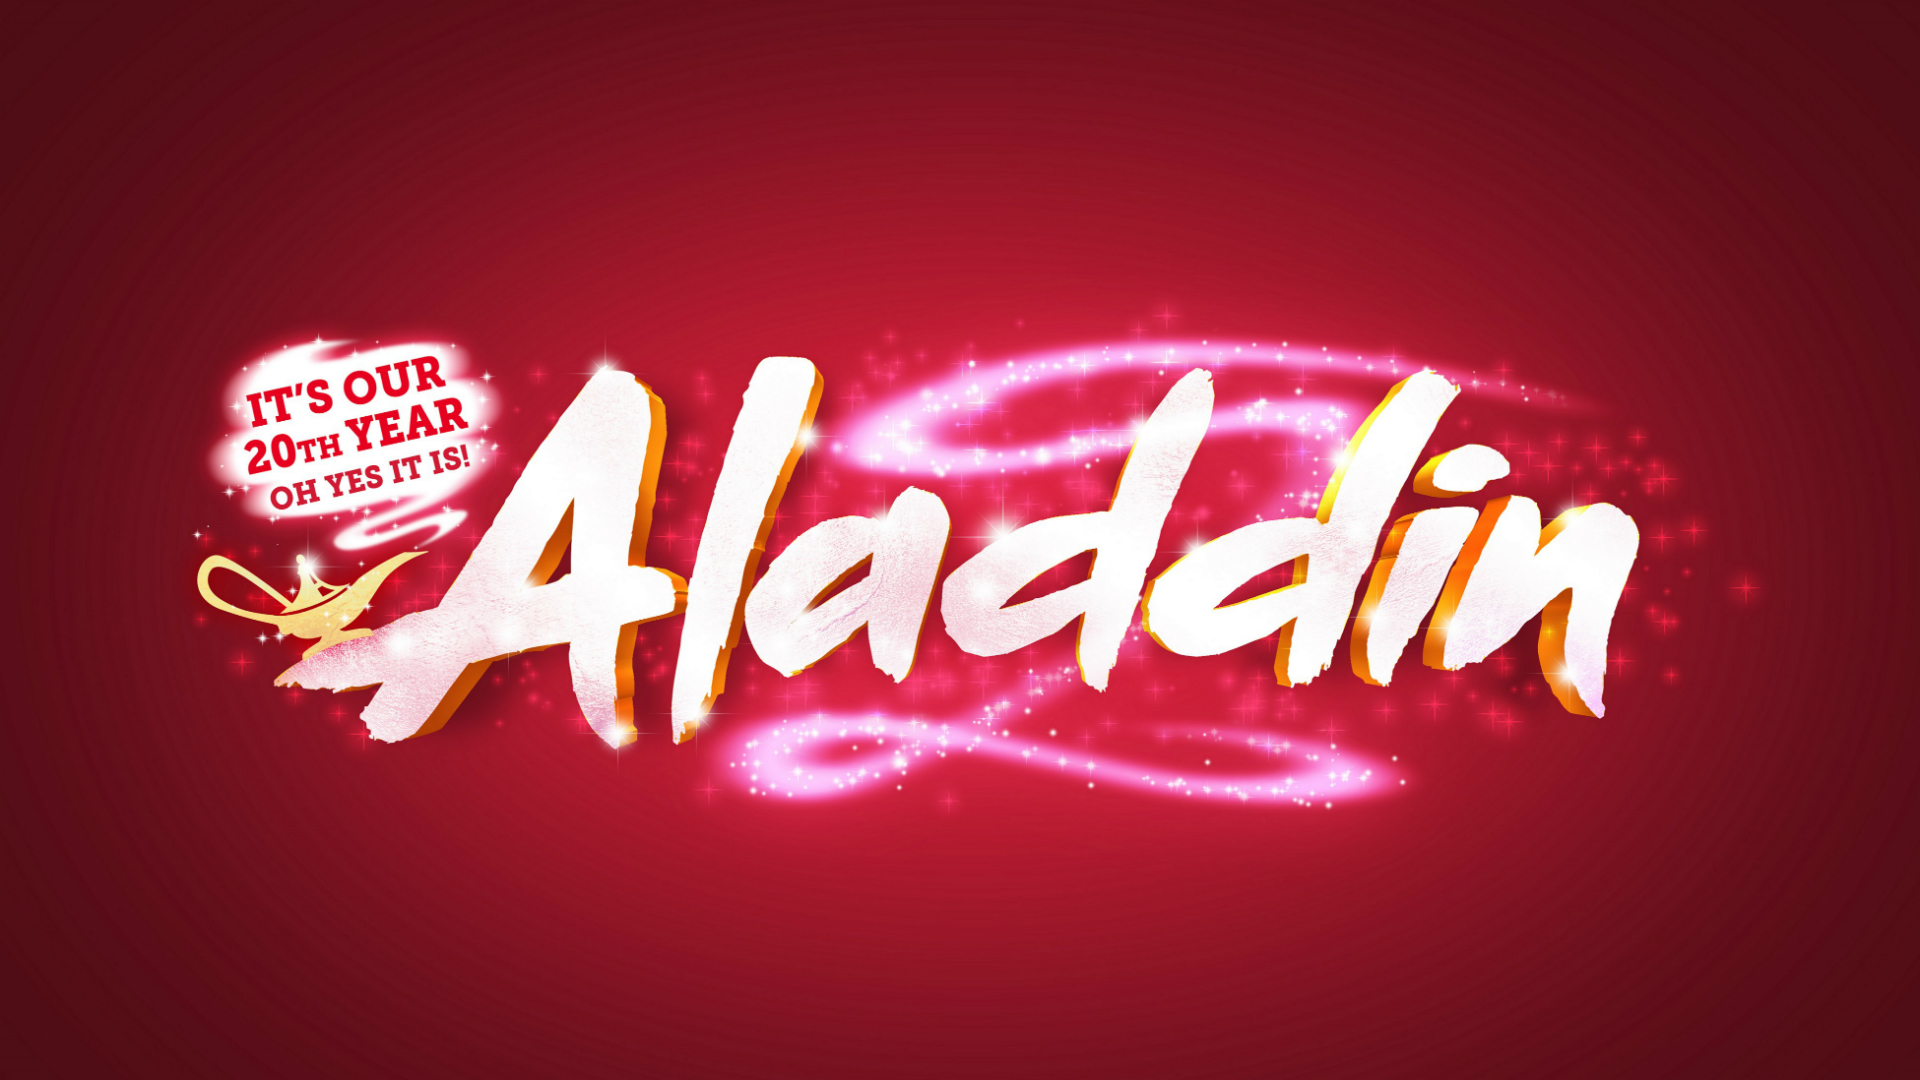 Aladdin, written in yellow on a red background